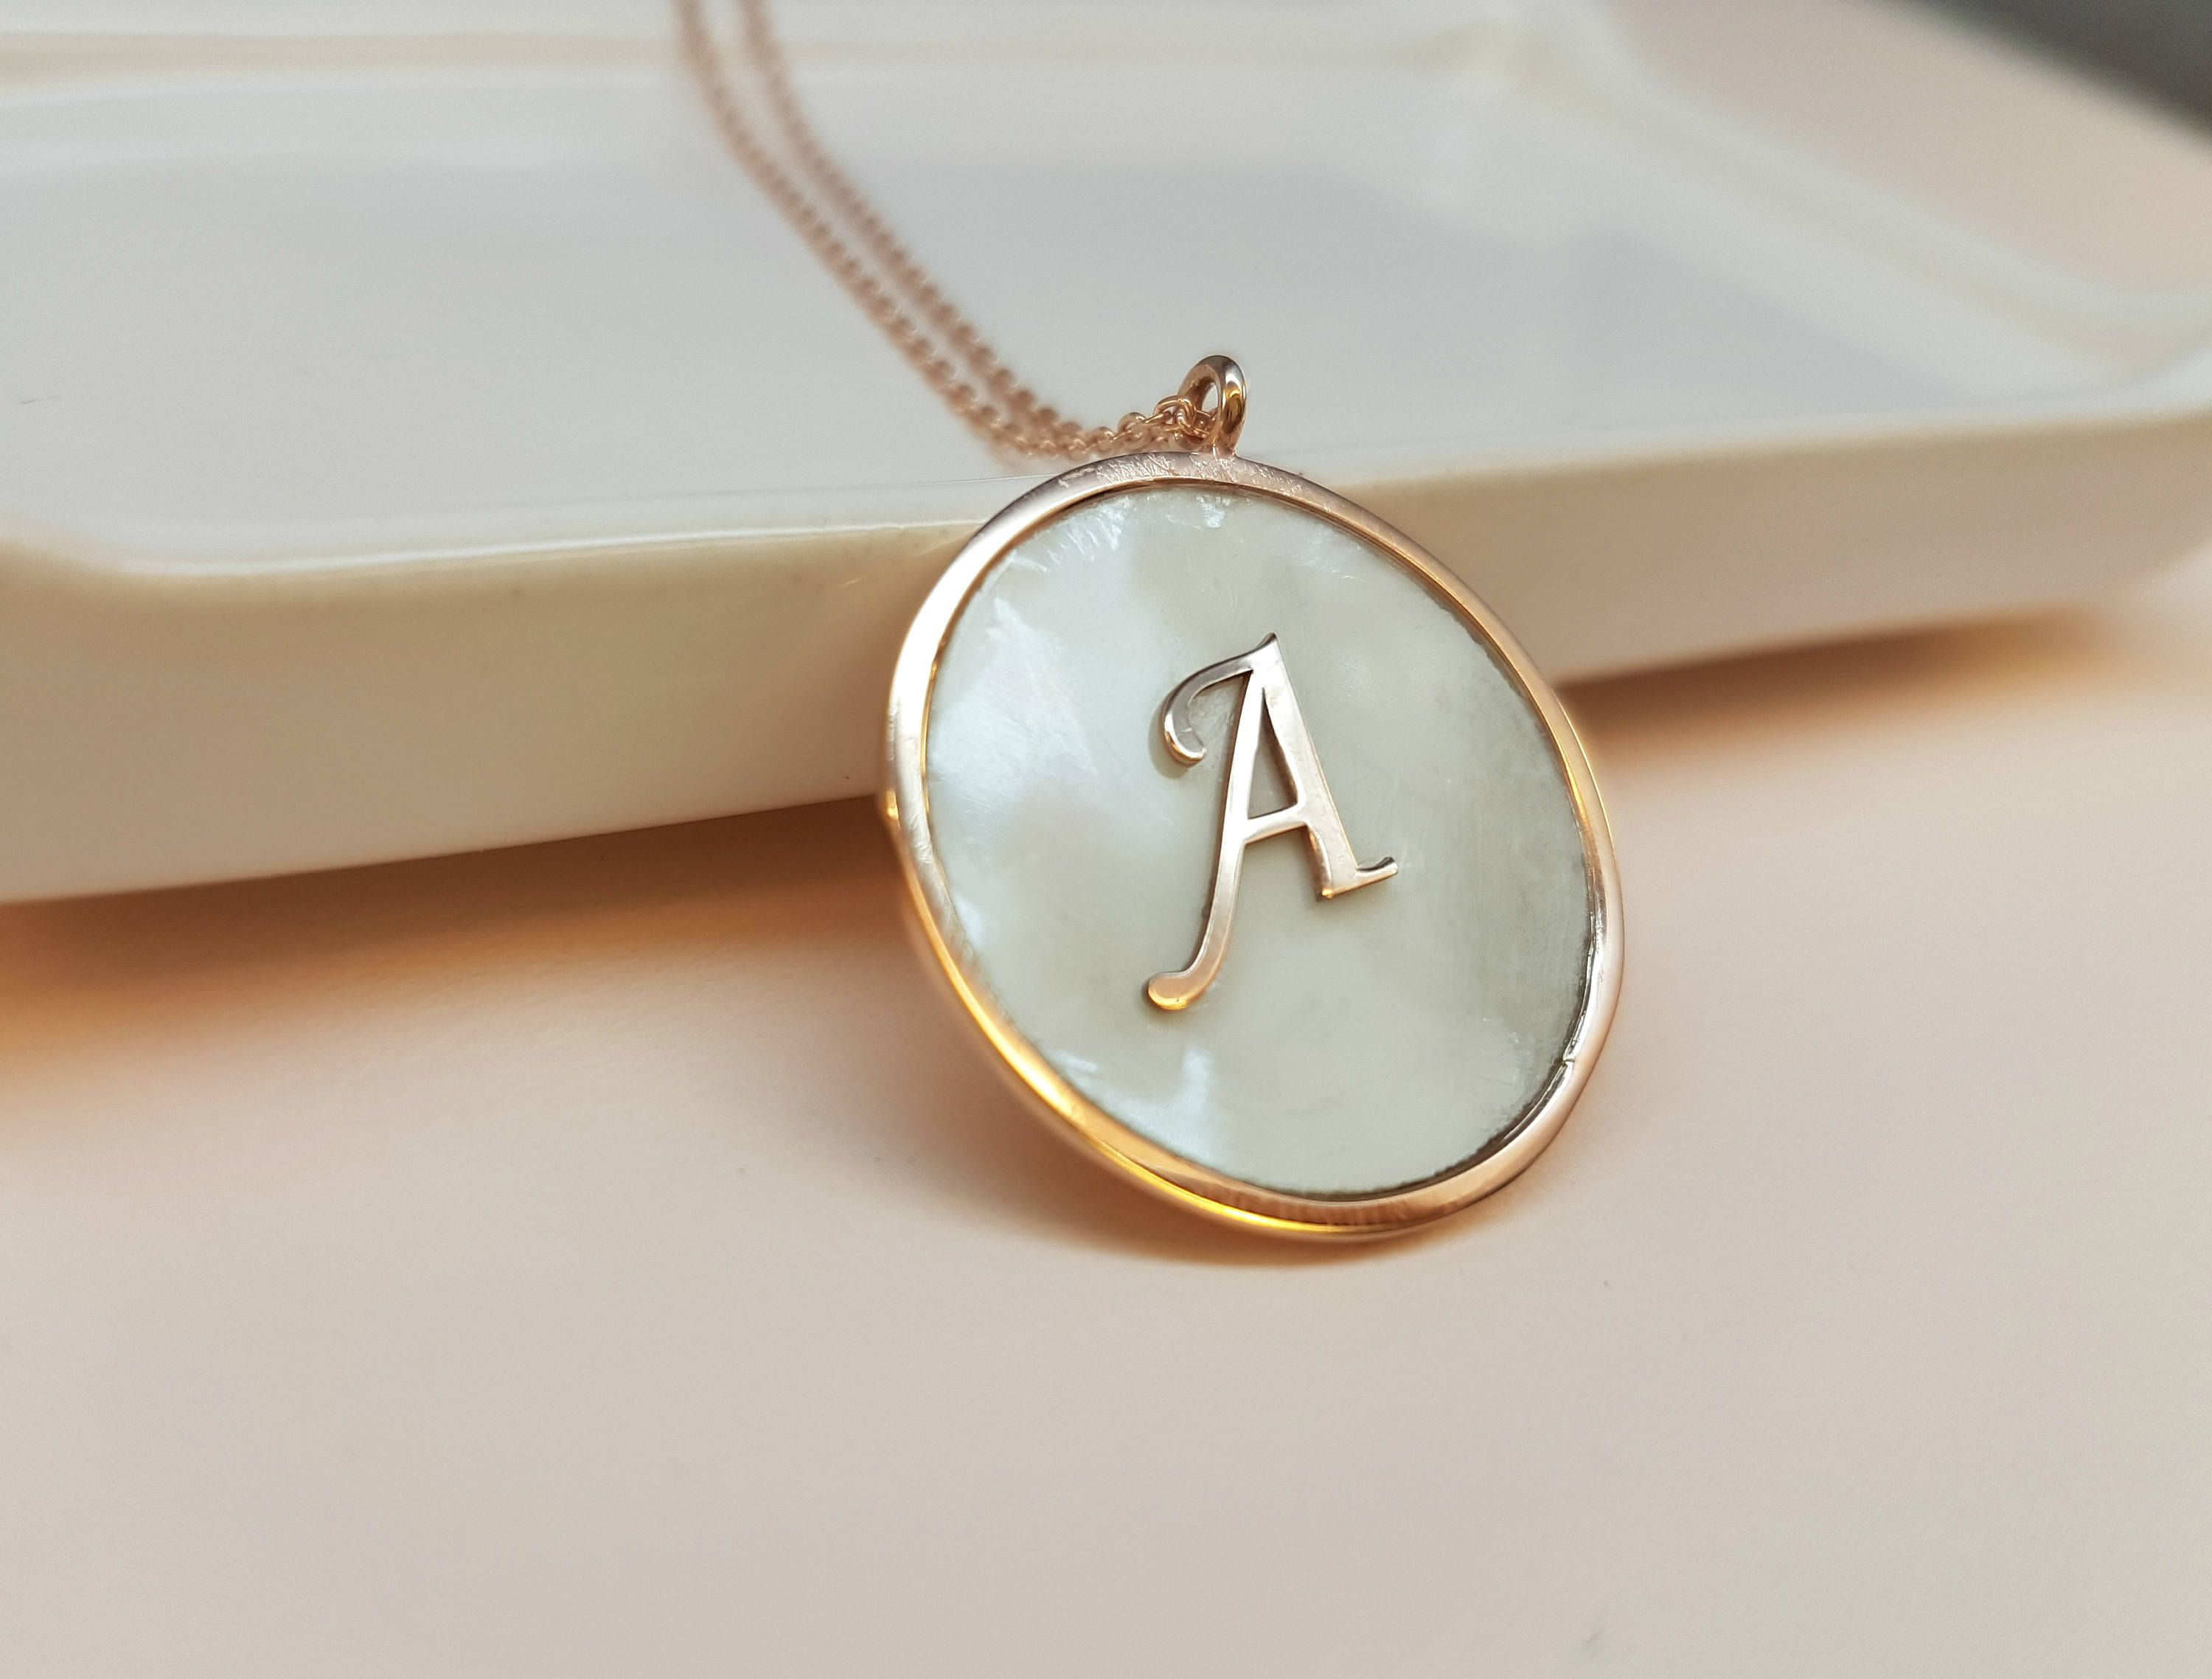 from alphabet chain women gold for is titanium free steel pendant choker letter m item fashion stainless pendants initial color in custom nmae luxusteel necklaces necklace bijoux words